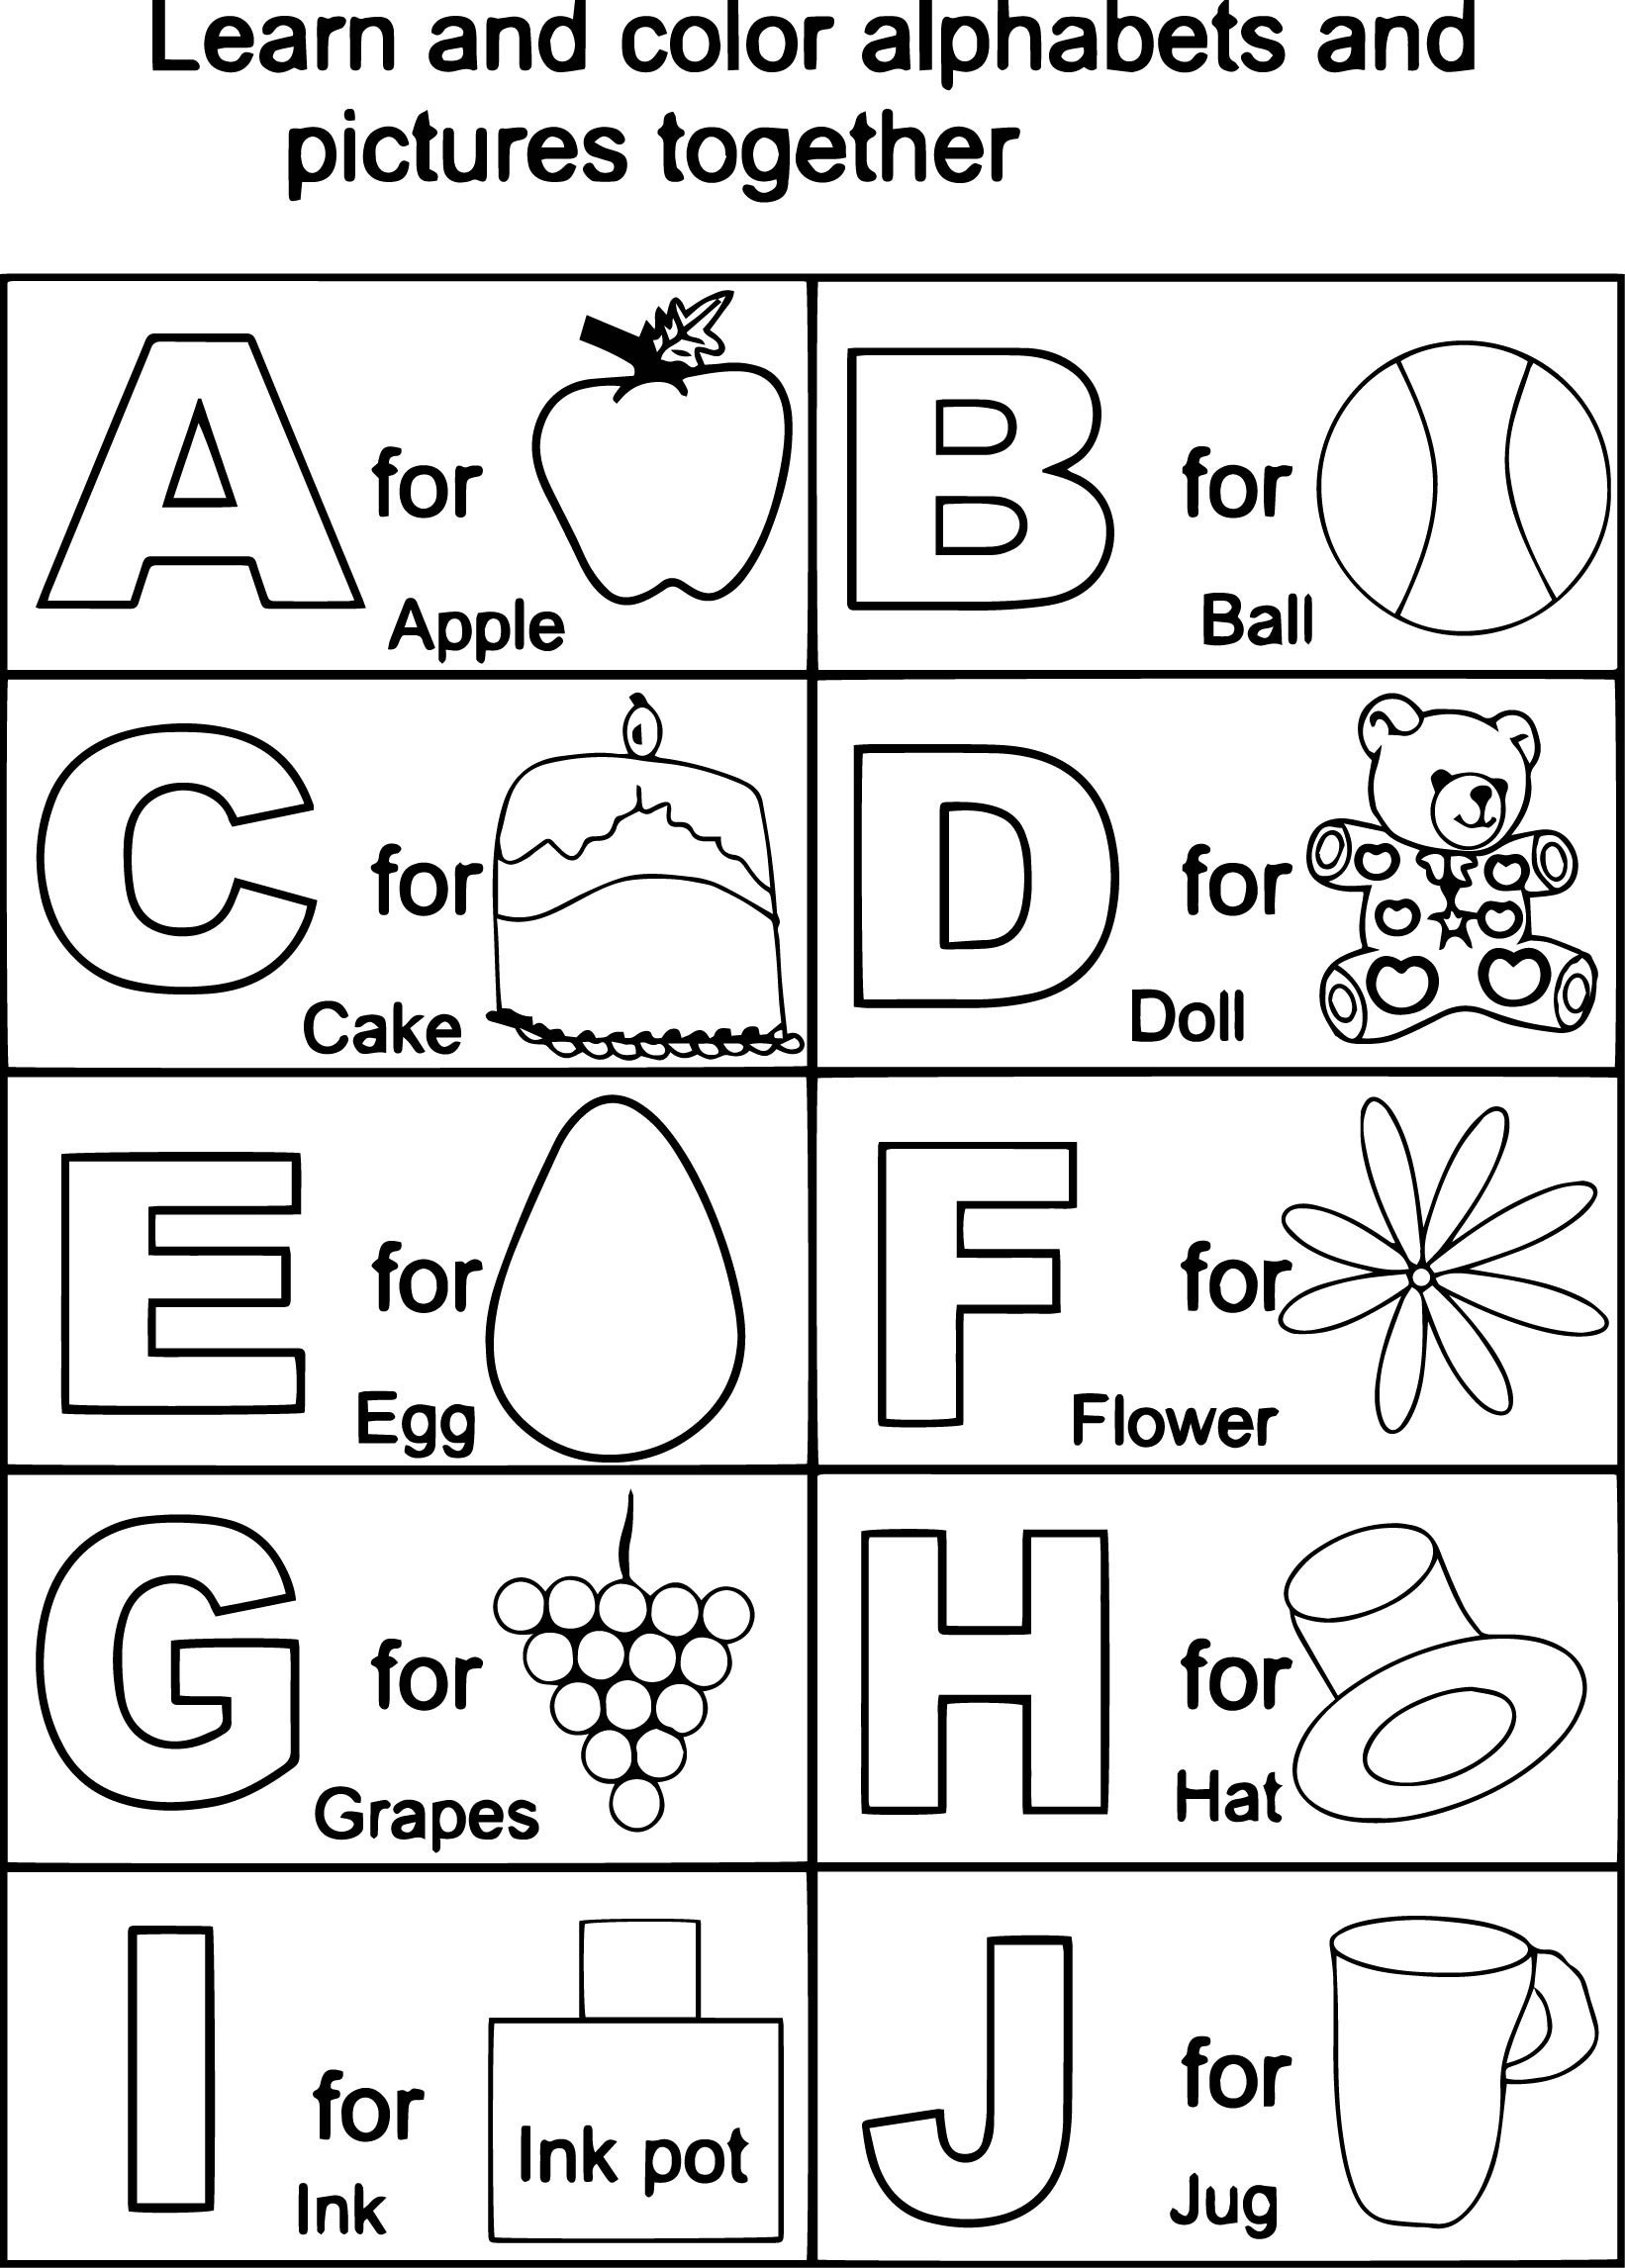 coloring pages alphabet free free printable alphabet coloring pages for kids best pages alphabet coloring free